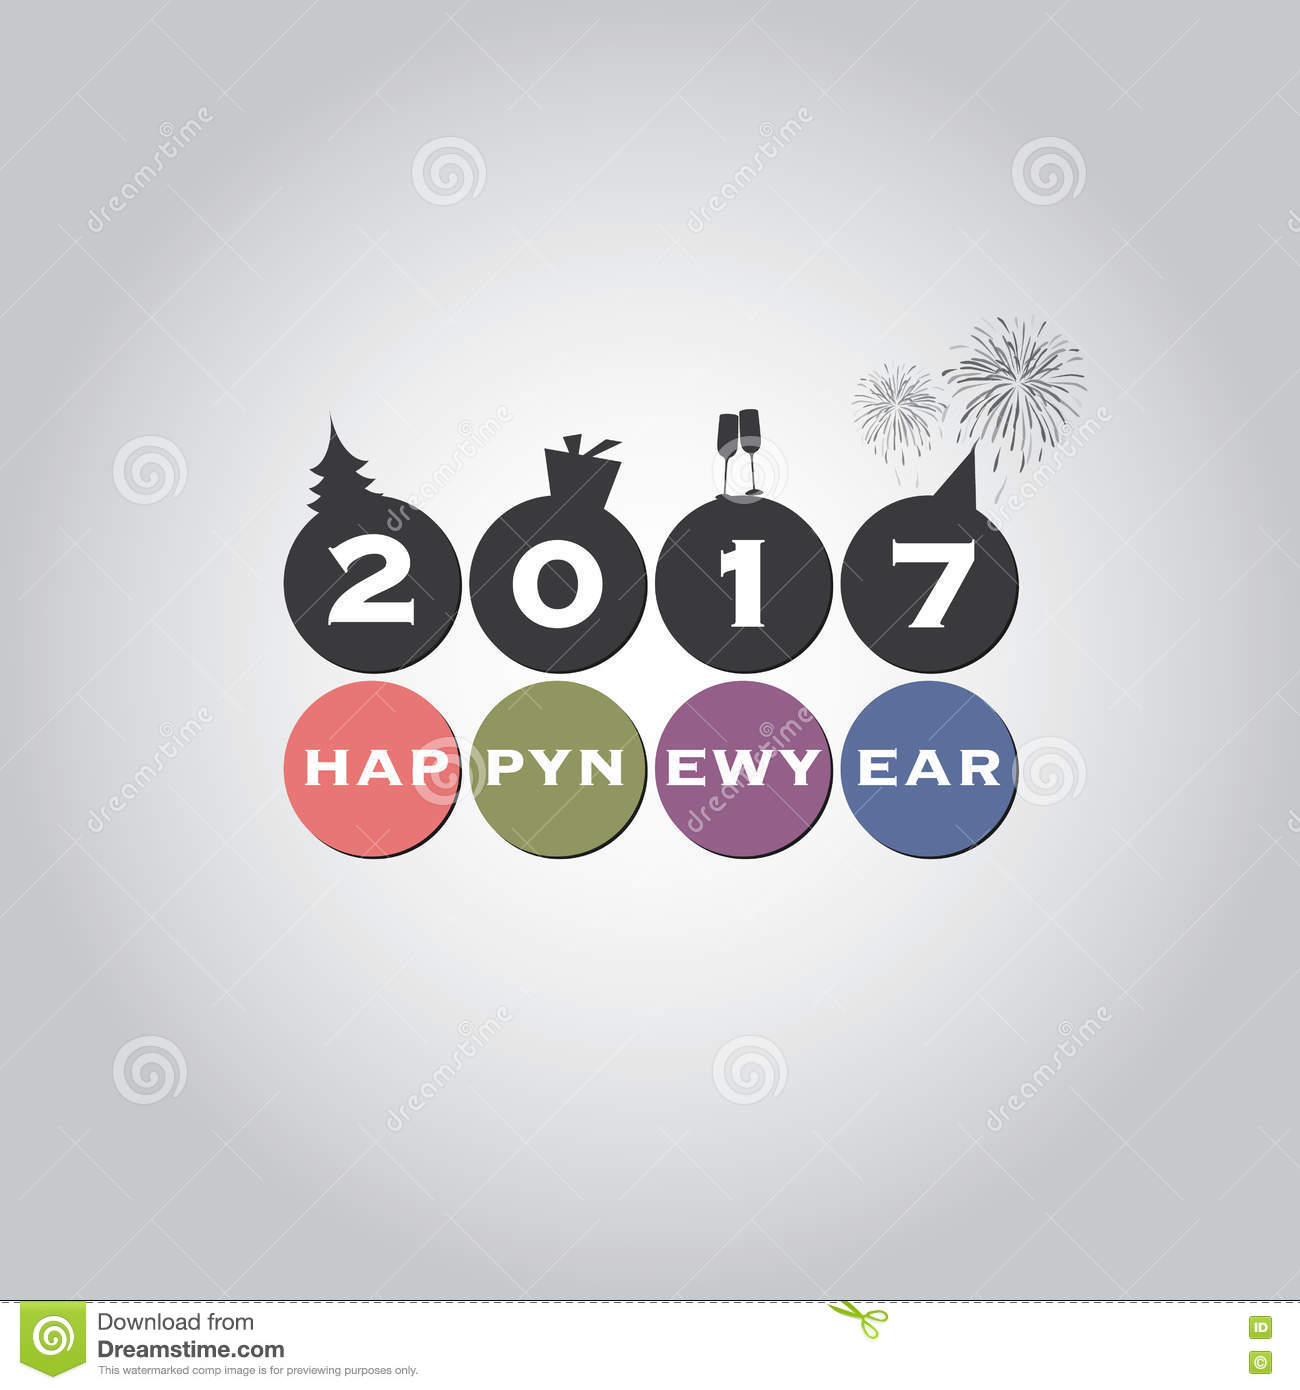 New Year Card Background, Creative Design - 2017 Stock Image - Image ...